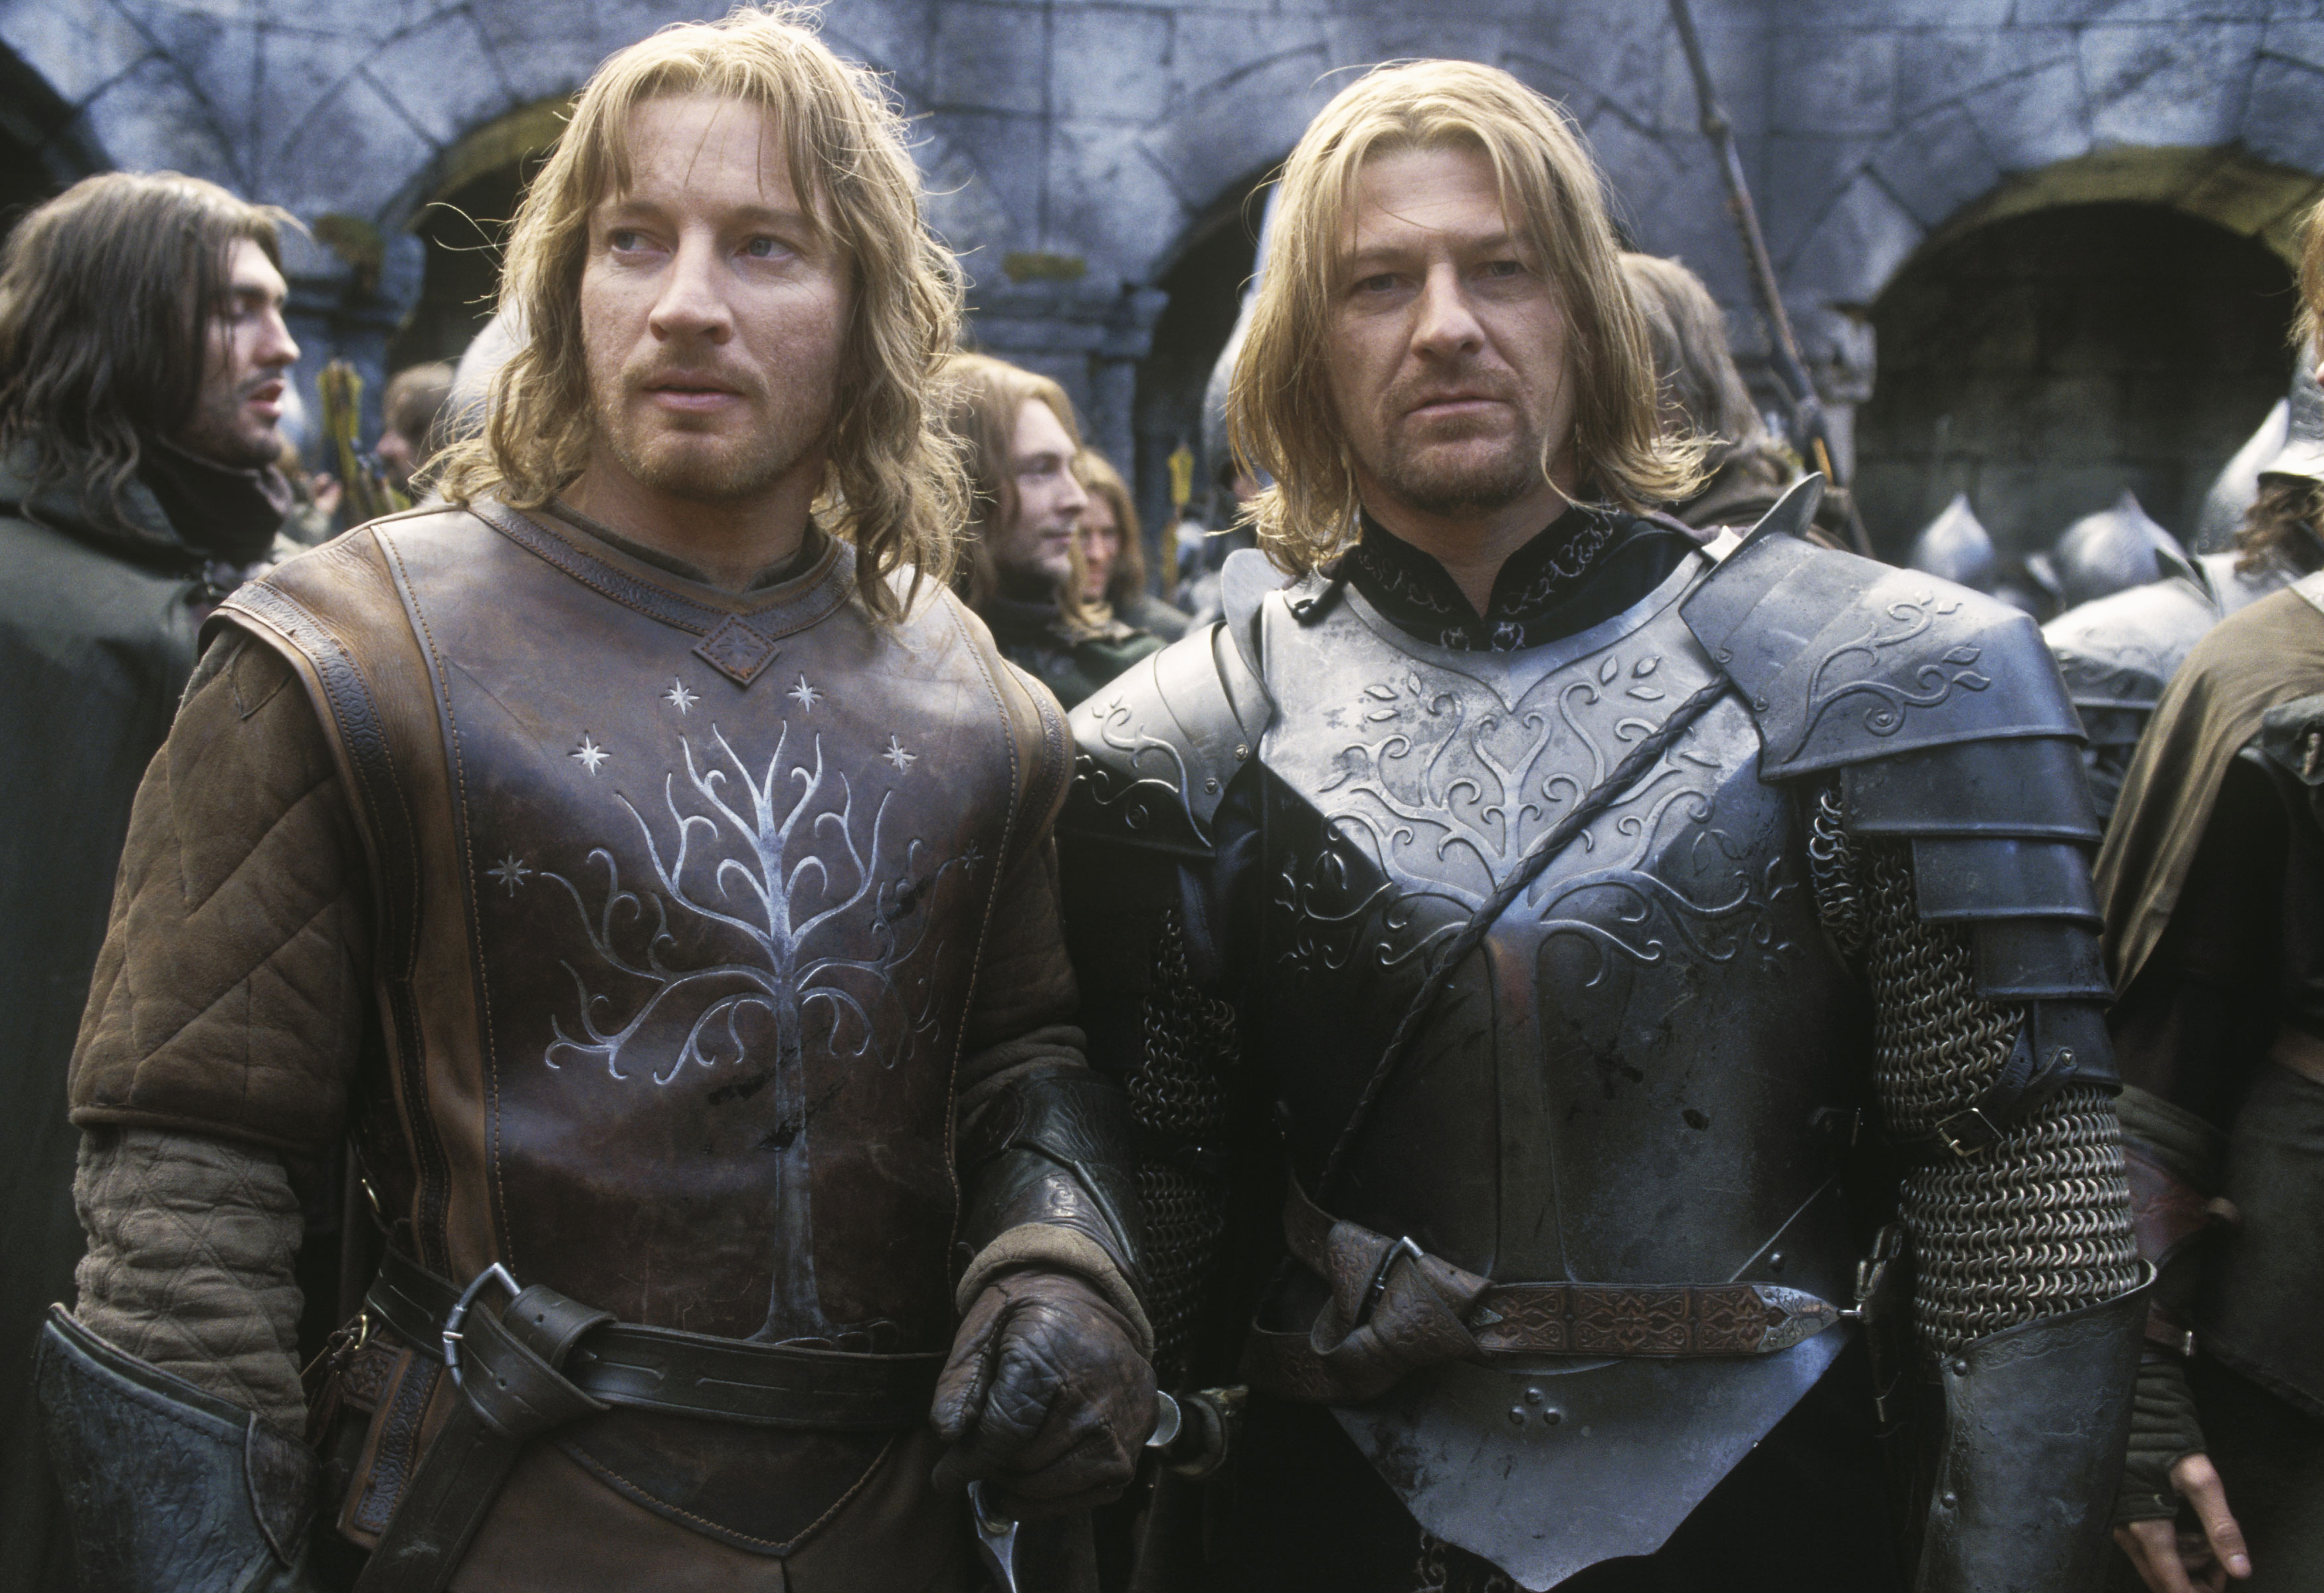 Sean Bean and David Wenham filming The Lord of the Rings: The Two Towers, 2002.